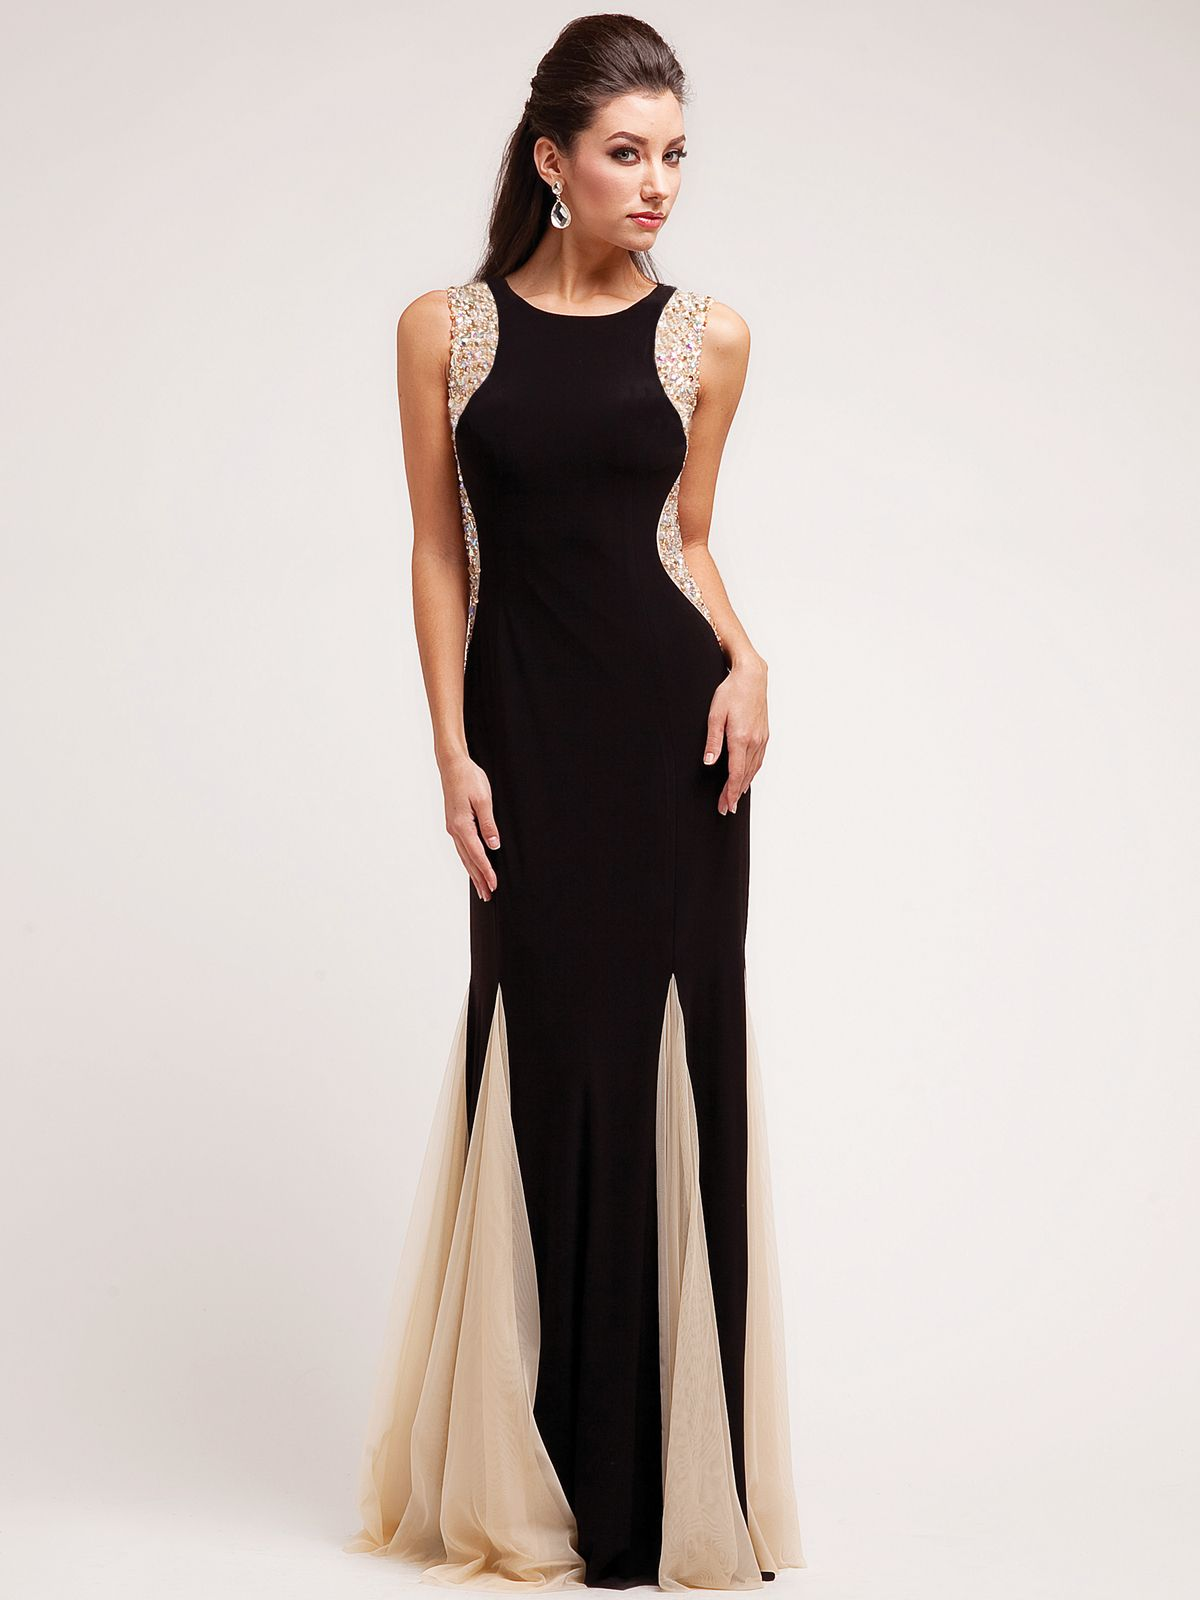 A Black Tie Affair Evening Dress | Hallowedding | Pinterest ...